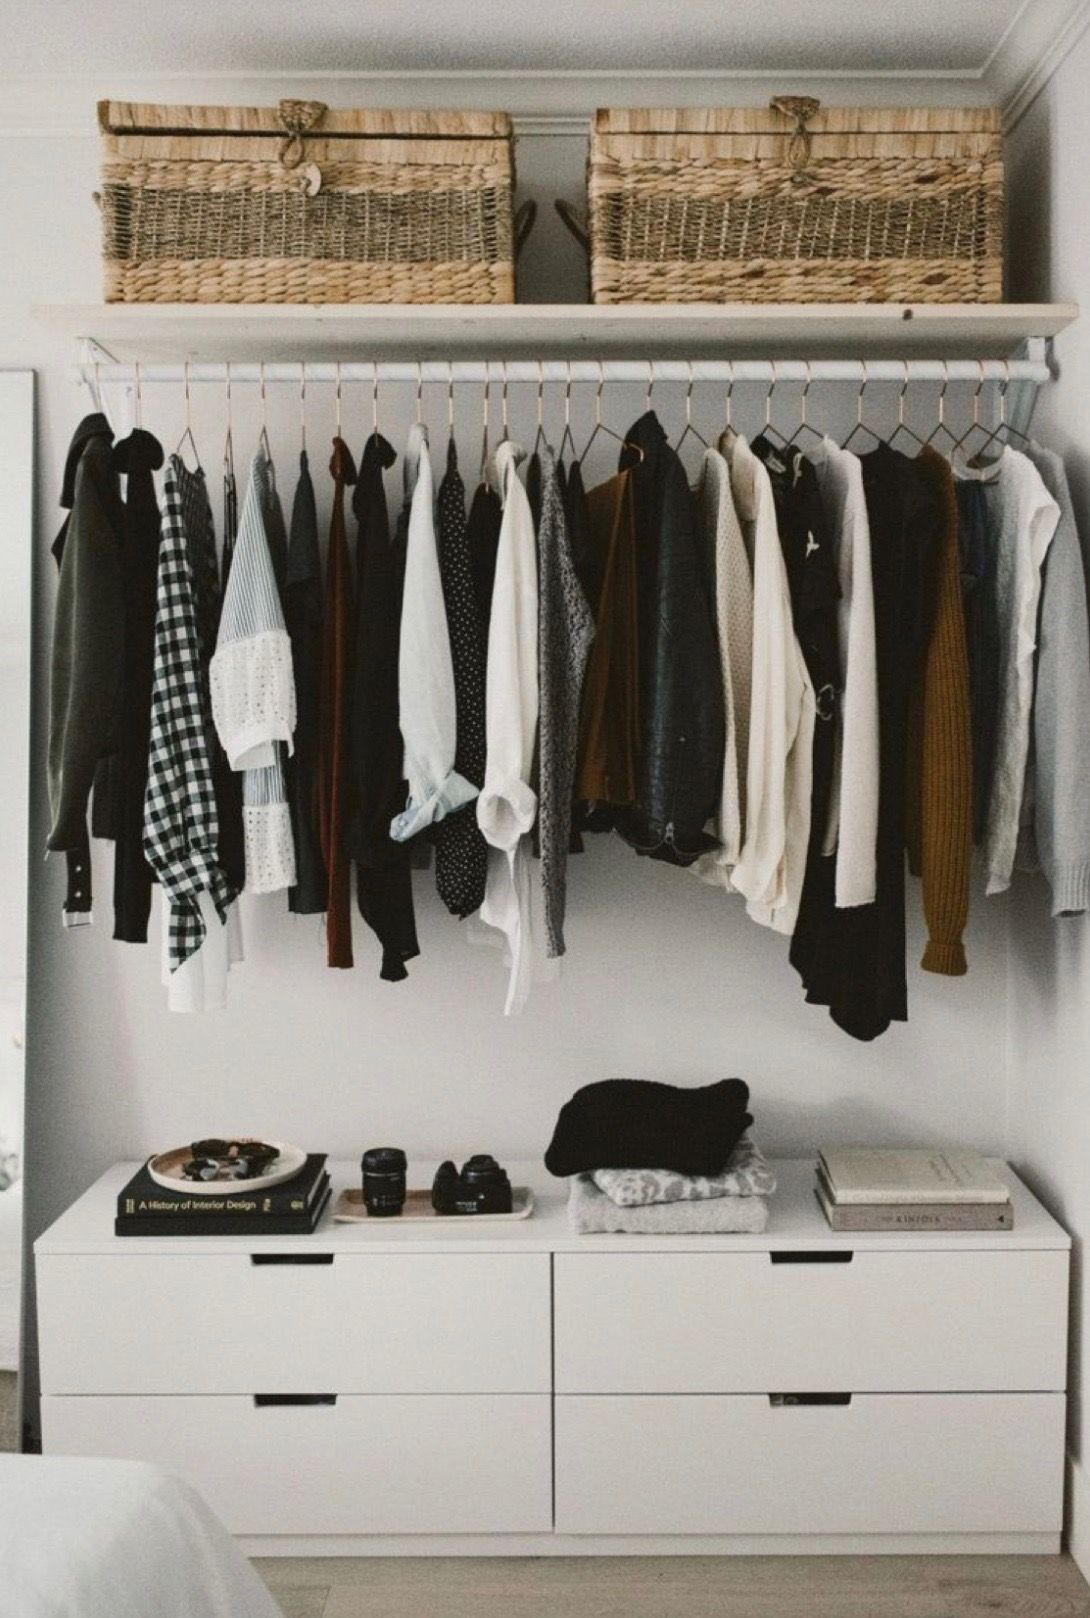 Pin By Carrie On Bedroom Design Bedroom Organization Closet Closet Concepts Small Bedroom Decor